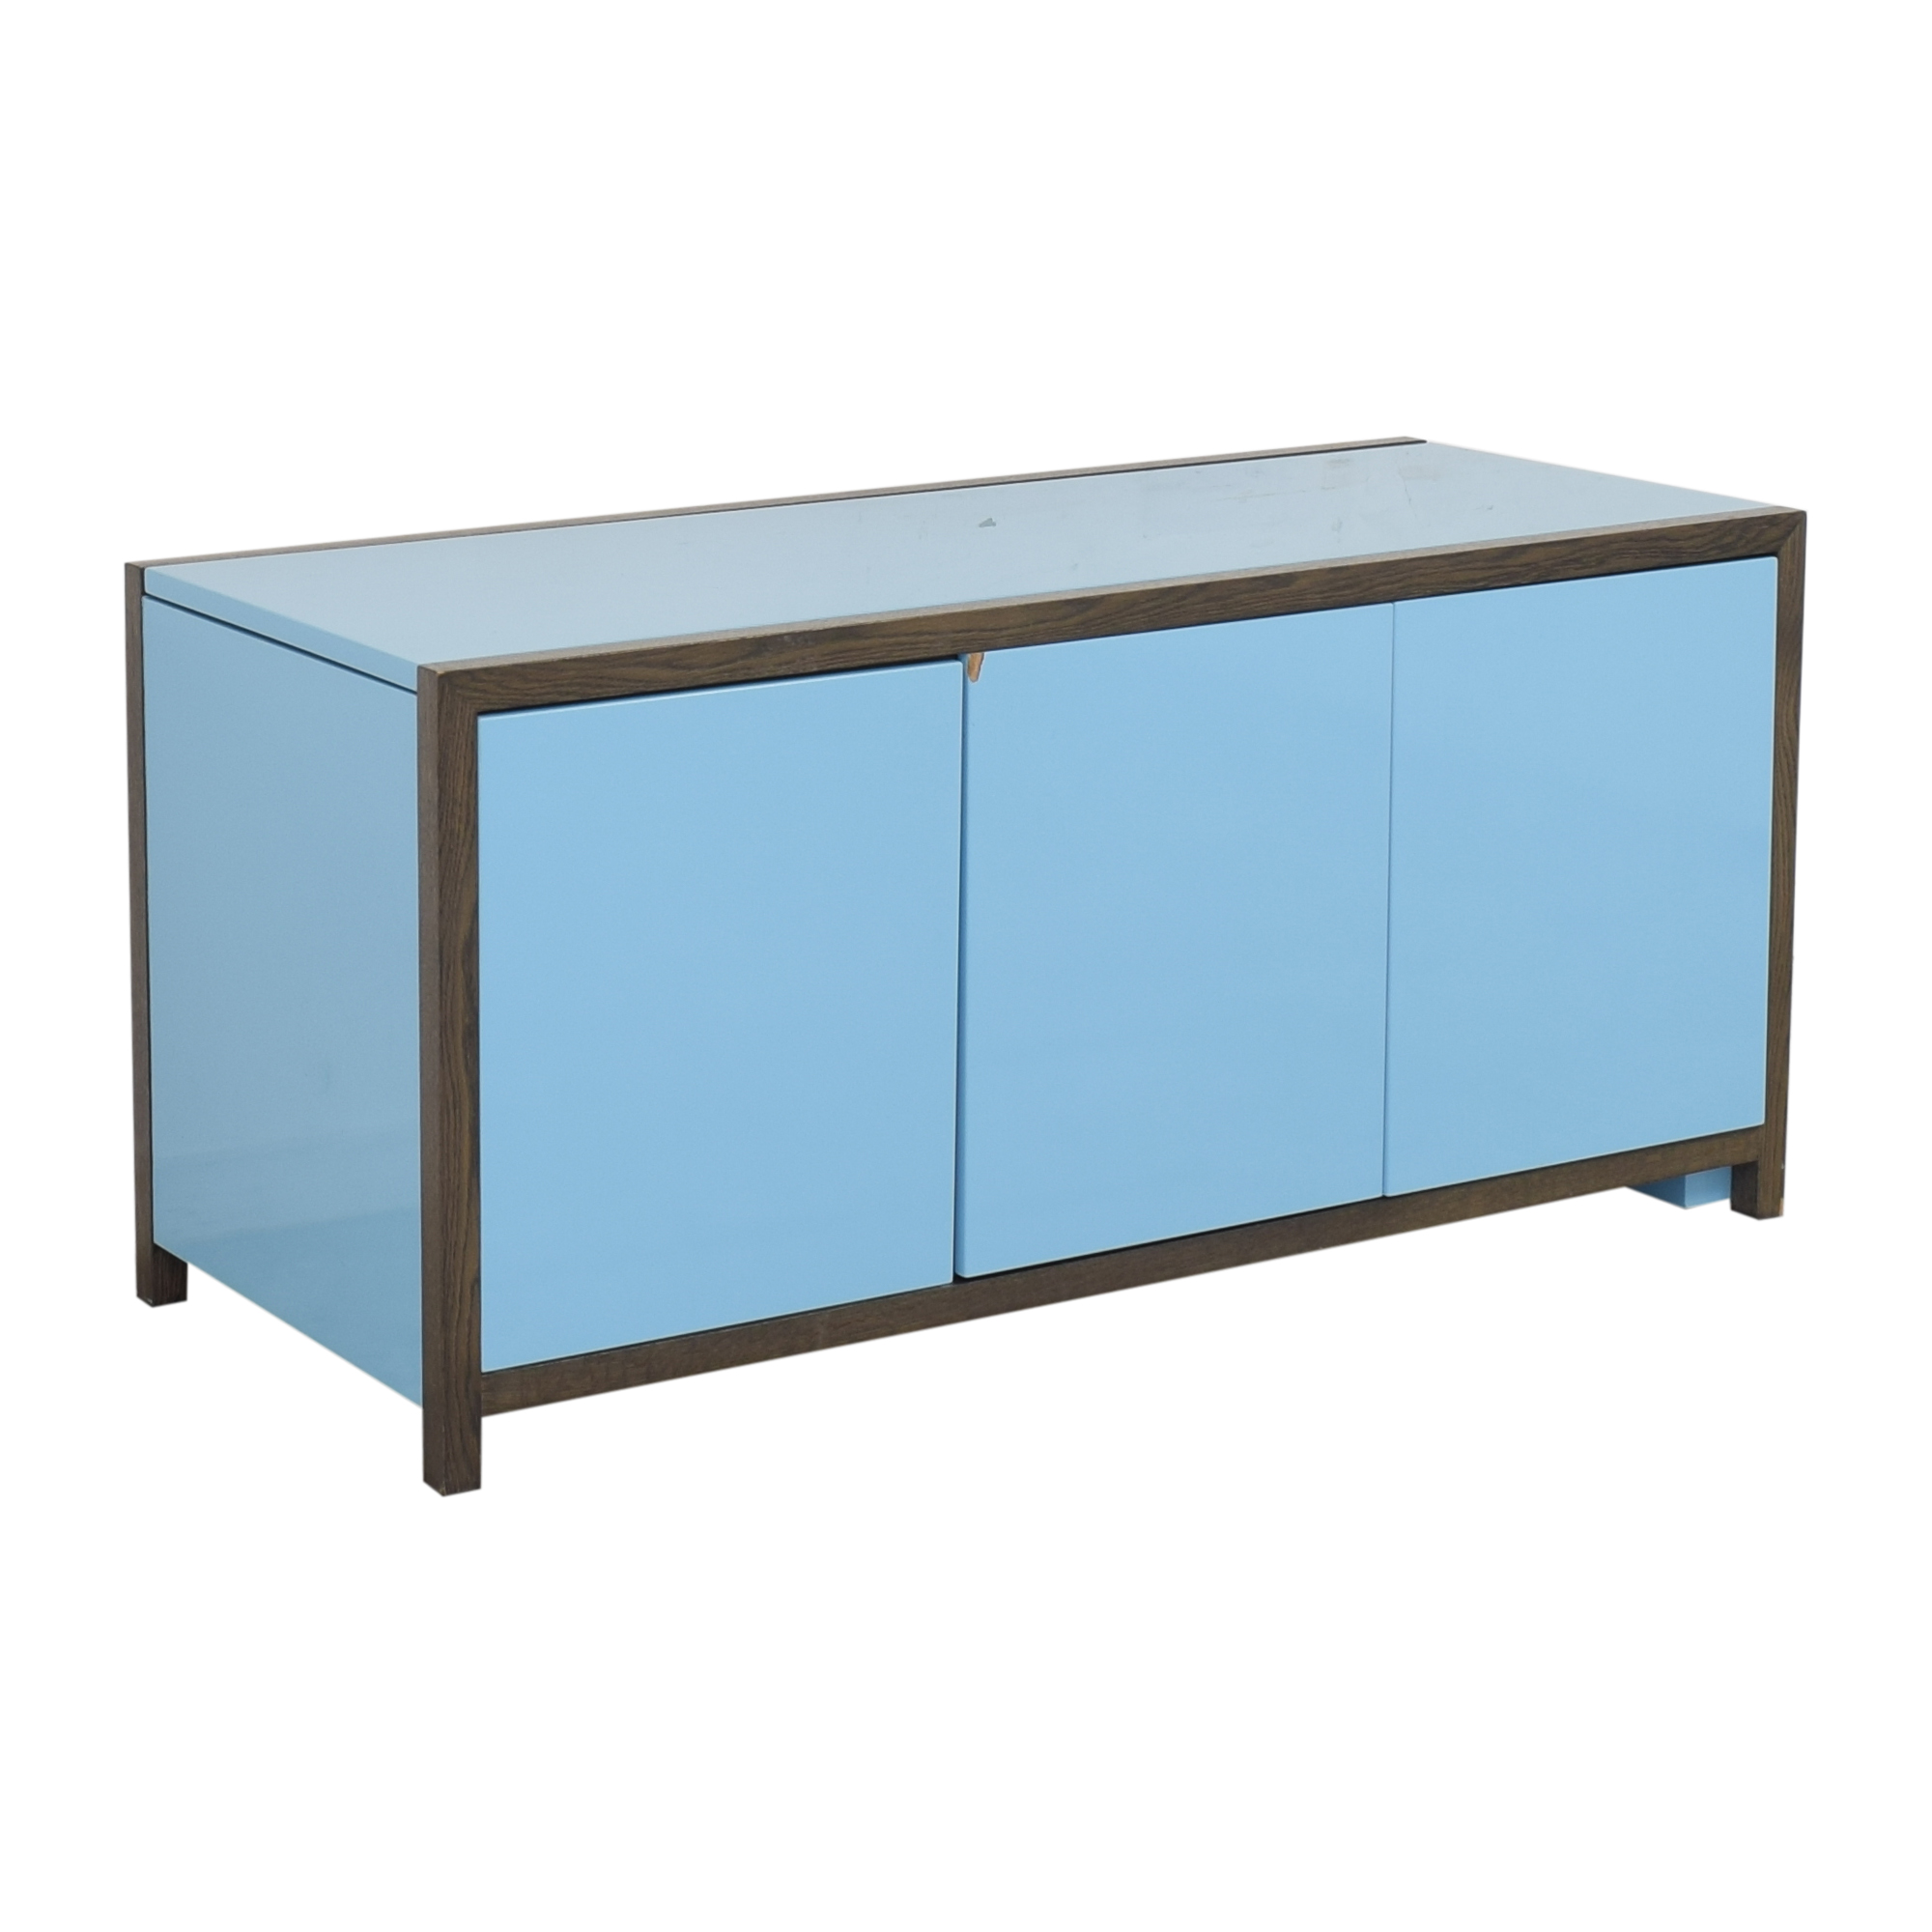 Dune Dune Lemans Sideboard with Extendable Desk nj